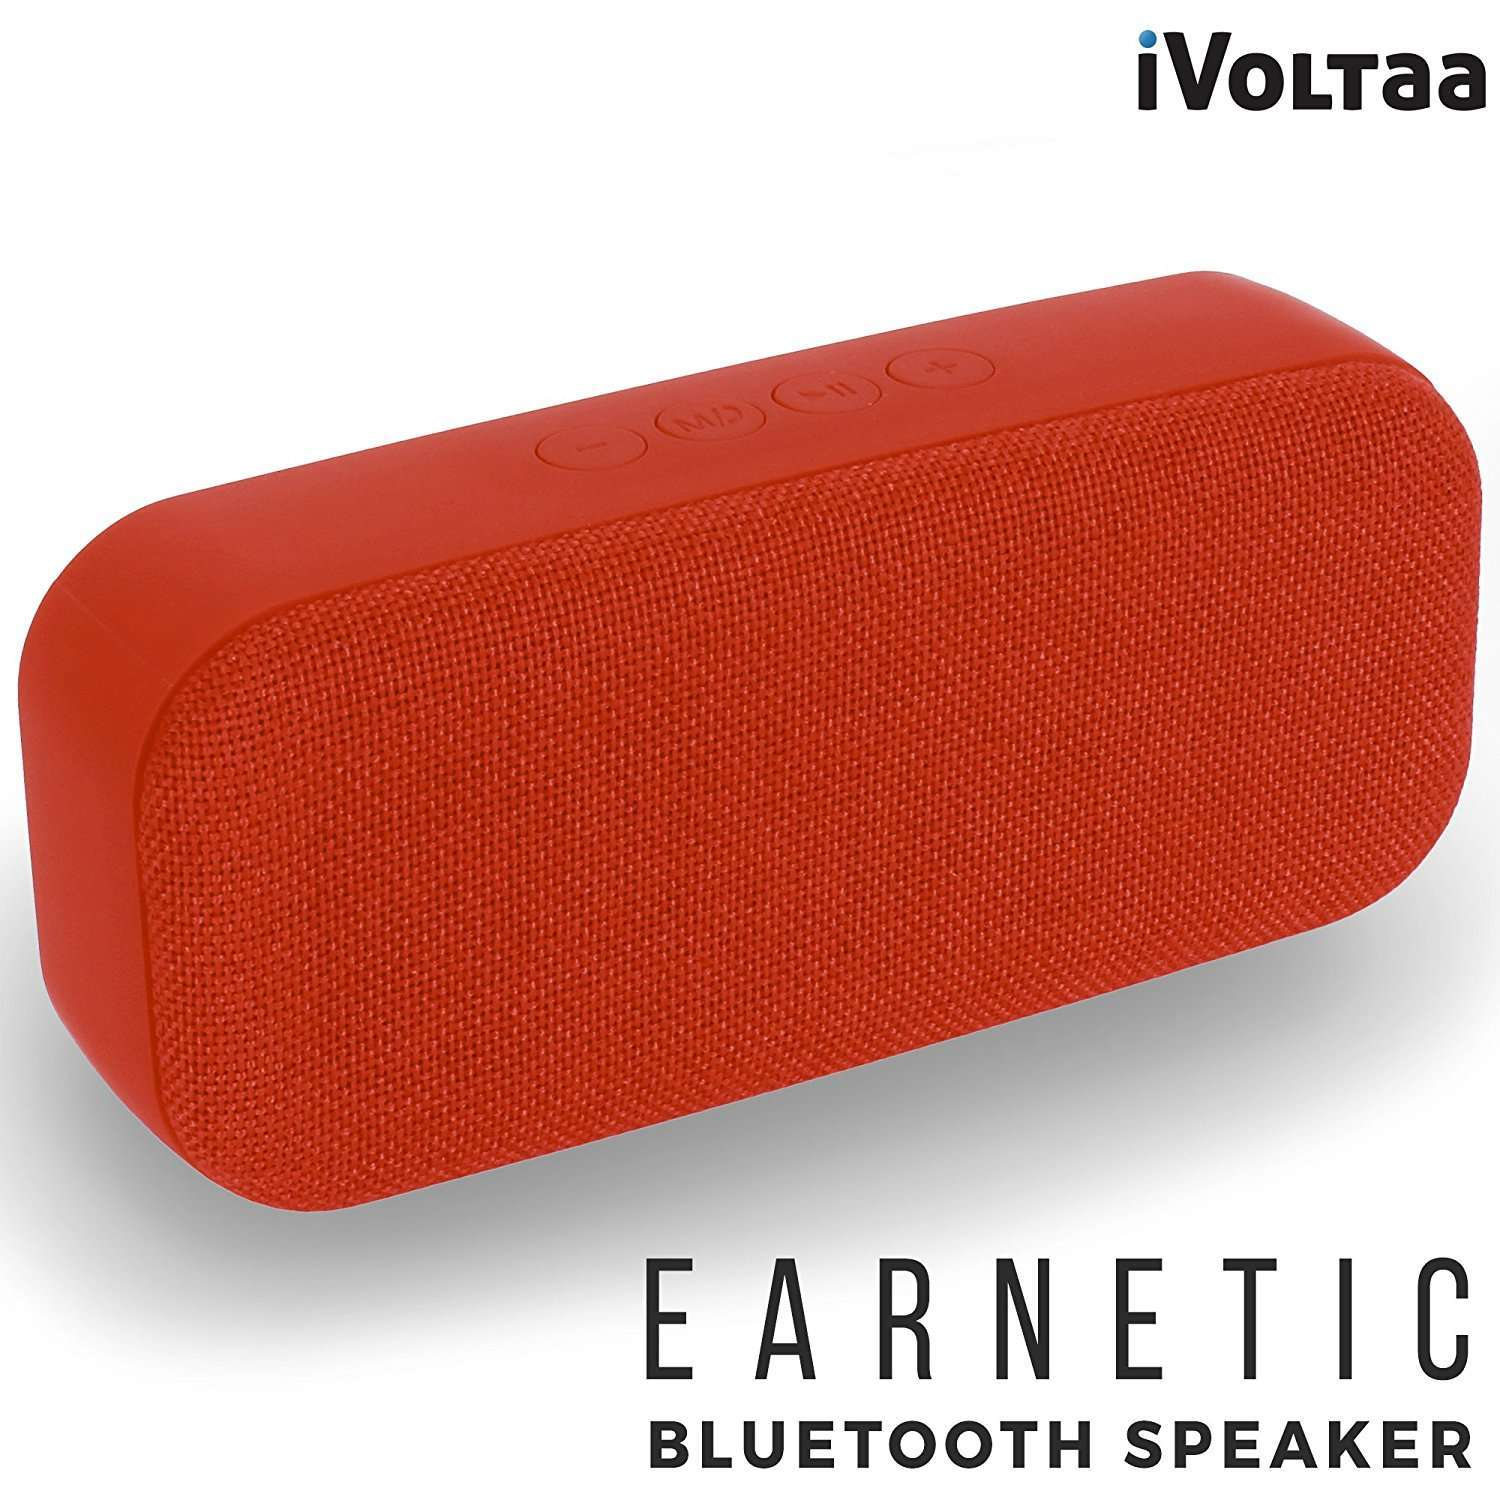 iVoltaa Earnetic Portable Wireless Bluetooth Speaker with Aux USB Pendrive Micro SD Card slot Mic (Red)